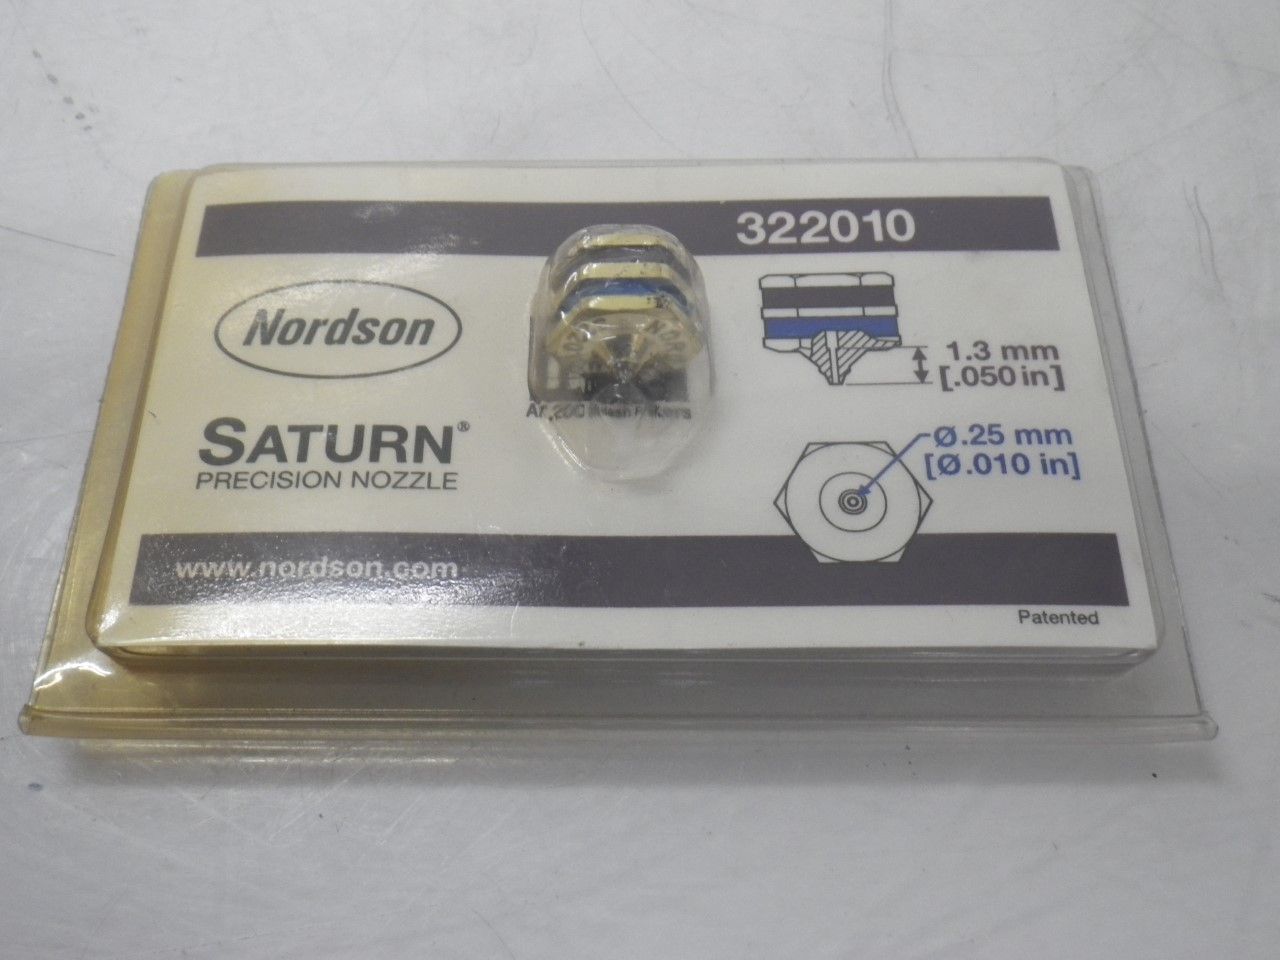 IMGP8502322010 Nordson Saturn Precision Nozzle .25mm Outlet (New) (6)